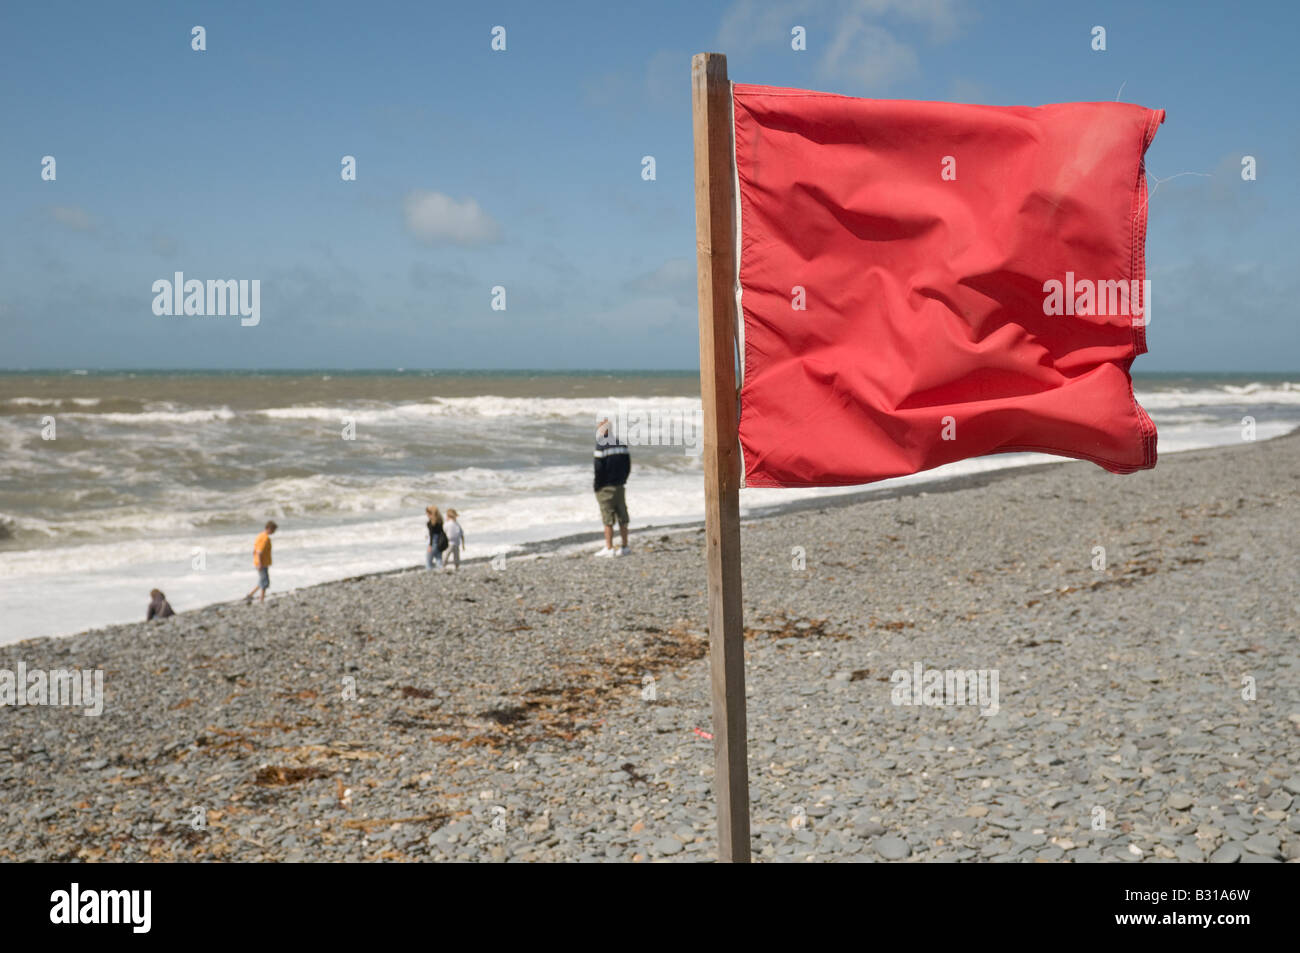 Red danger flag on beach warning of perilous swimming conditions Aberystwyth beach Wales UK - Stock Image